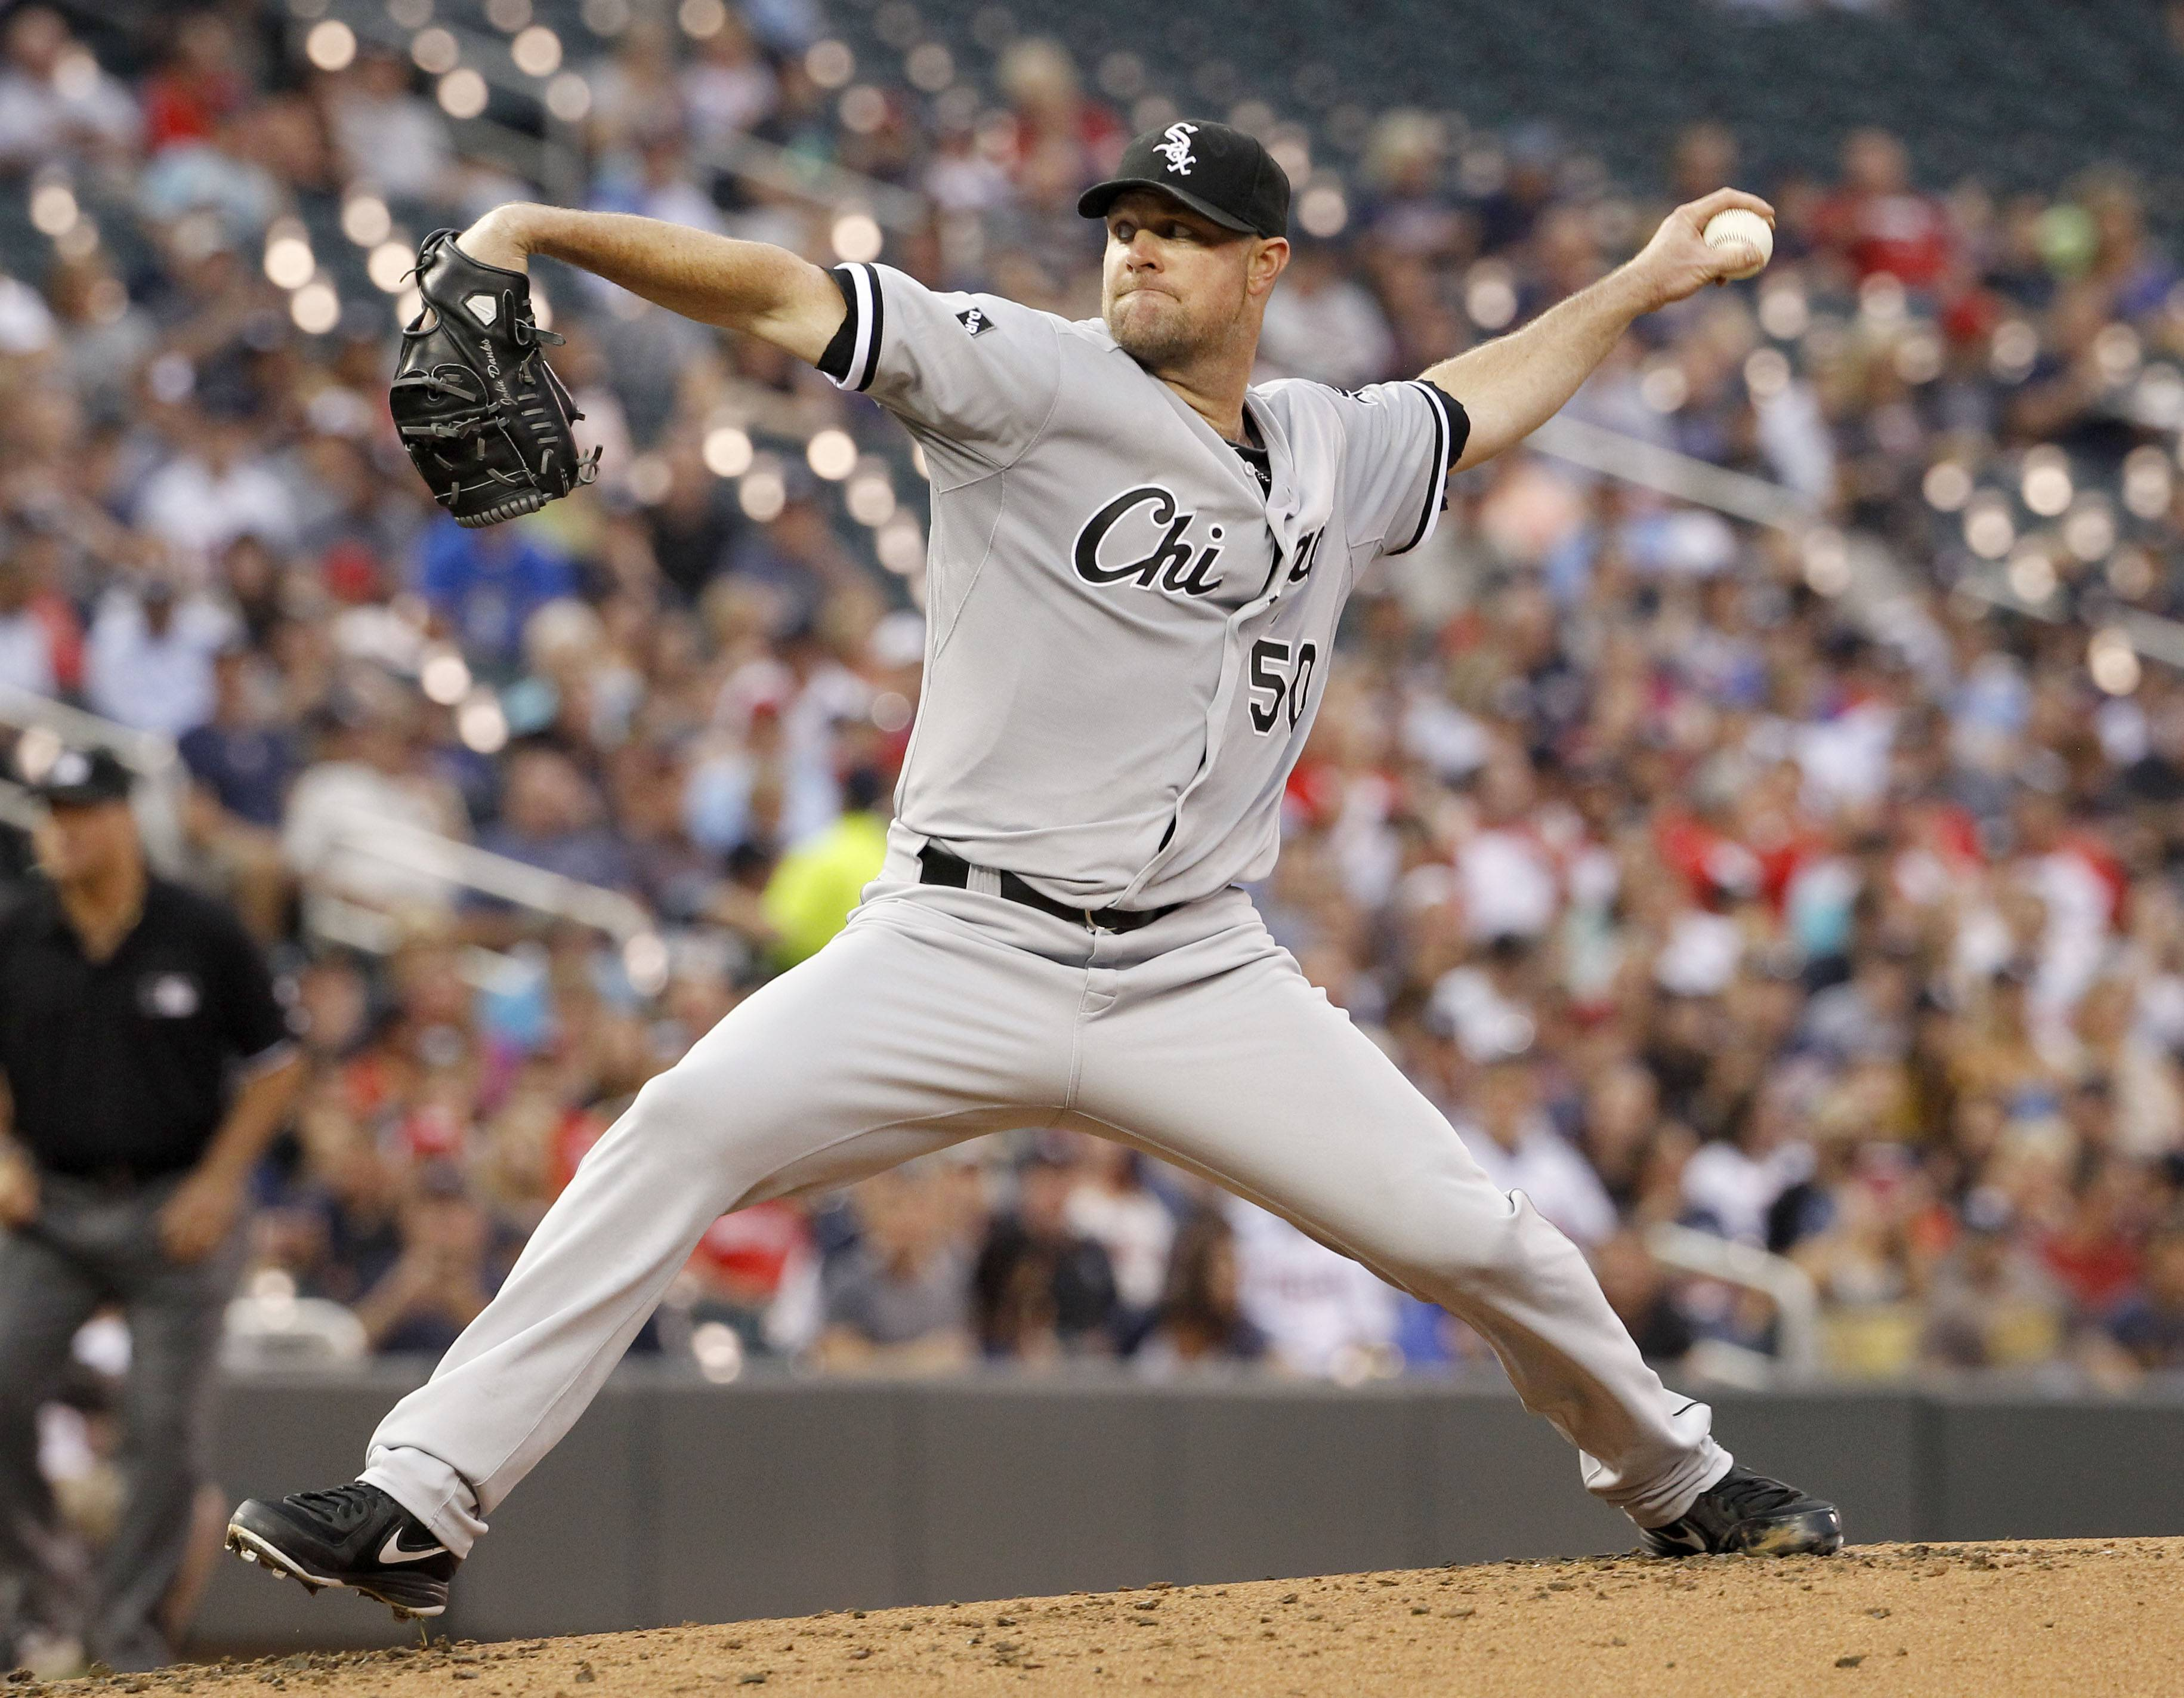 The nonwaiver trade deadline is 3 p.m. Thursday, but the only rumor involving the White Sox has left-handed starting pitcher John Danks possibly going to the New York Yankees or the Miami Marlins.